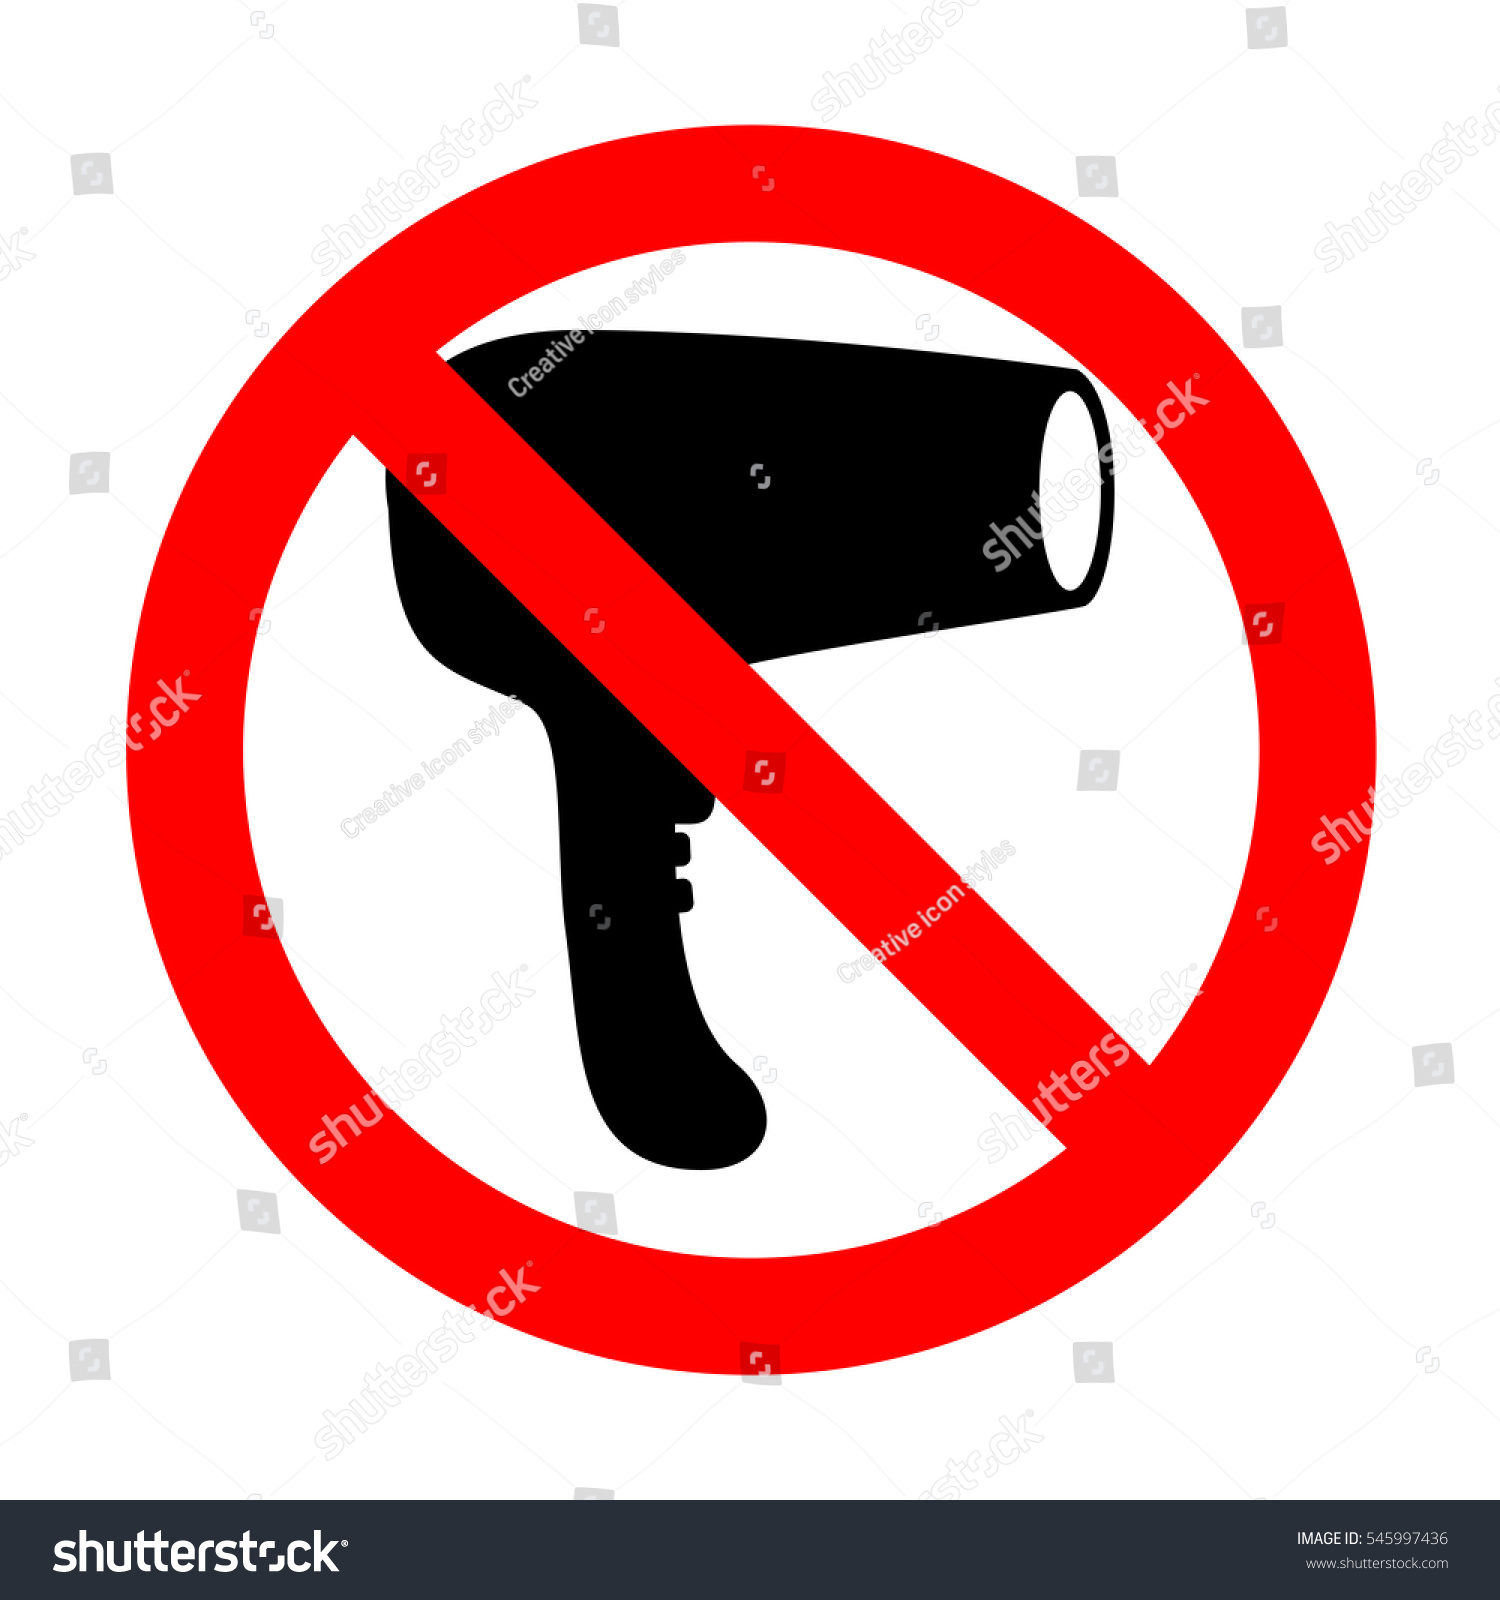 No hair dryer sign stock vector 545997436 shutterstock no hair dryer sign biocorpaavc Choice Image